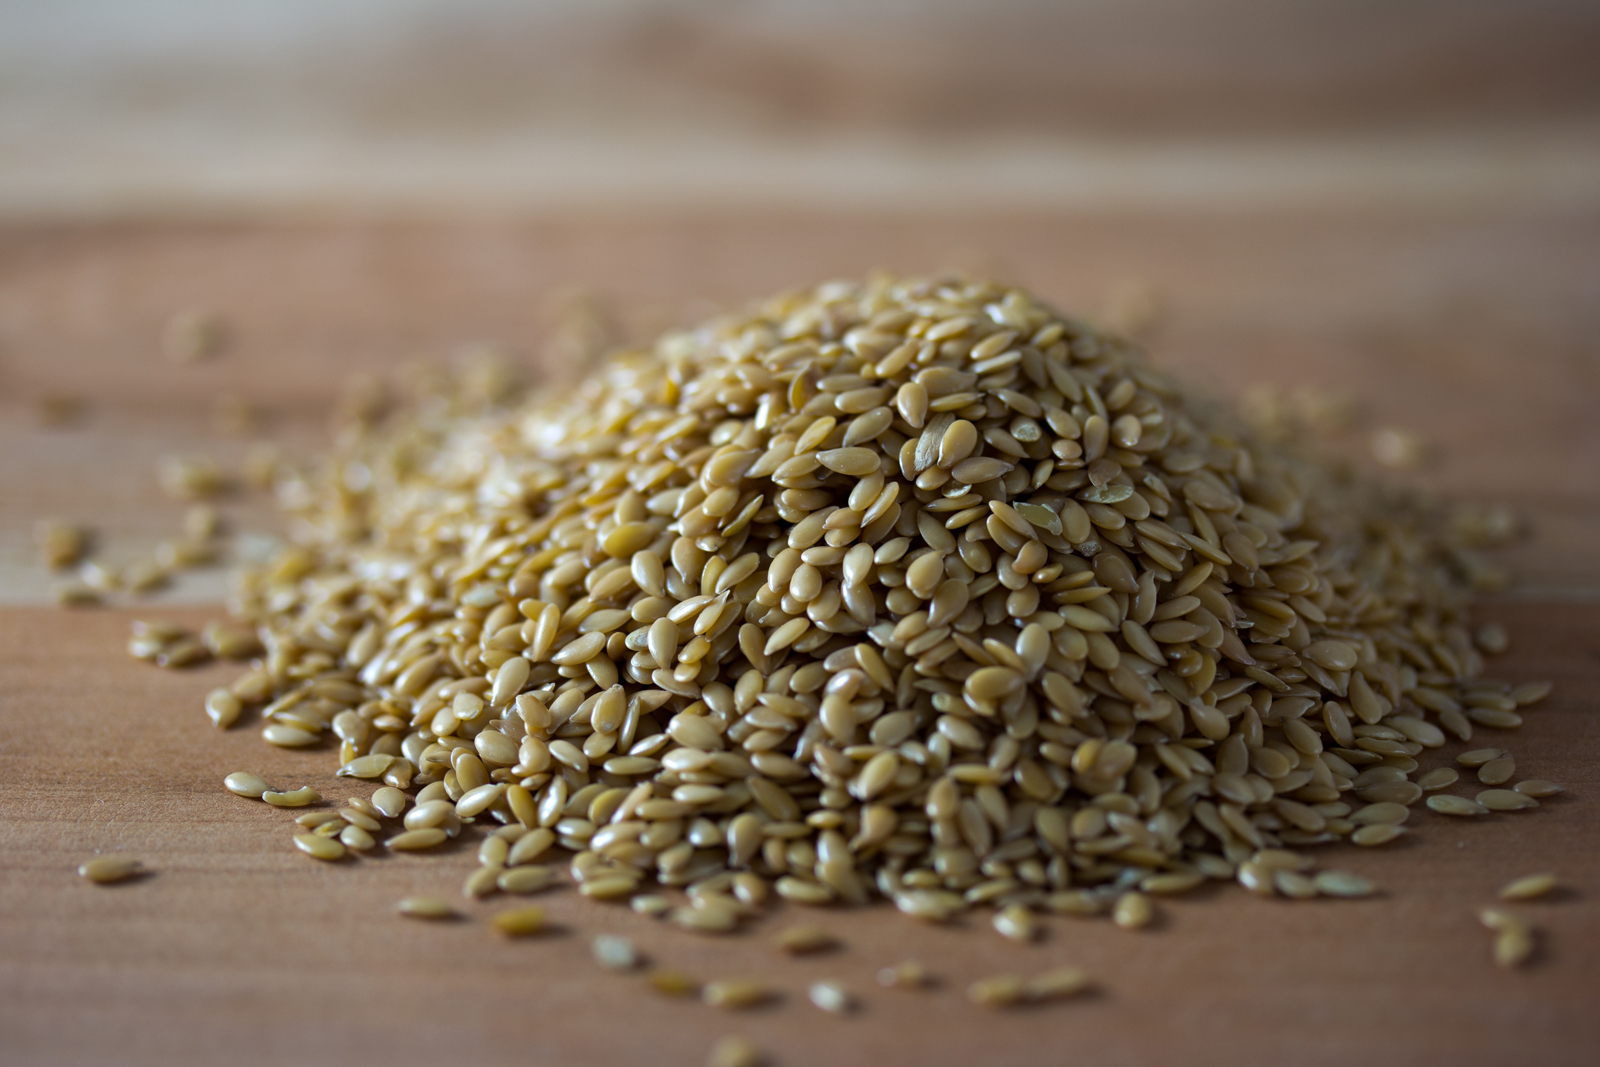 Plant-Based Foods With the Highest Omega-3 Fatty Acids